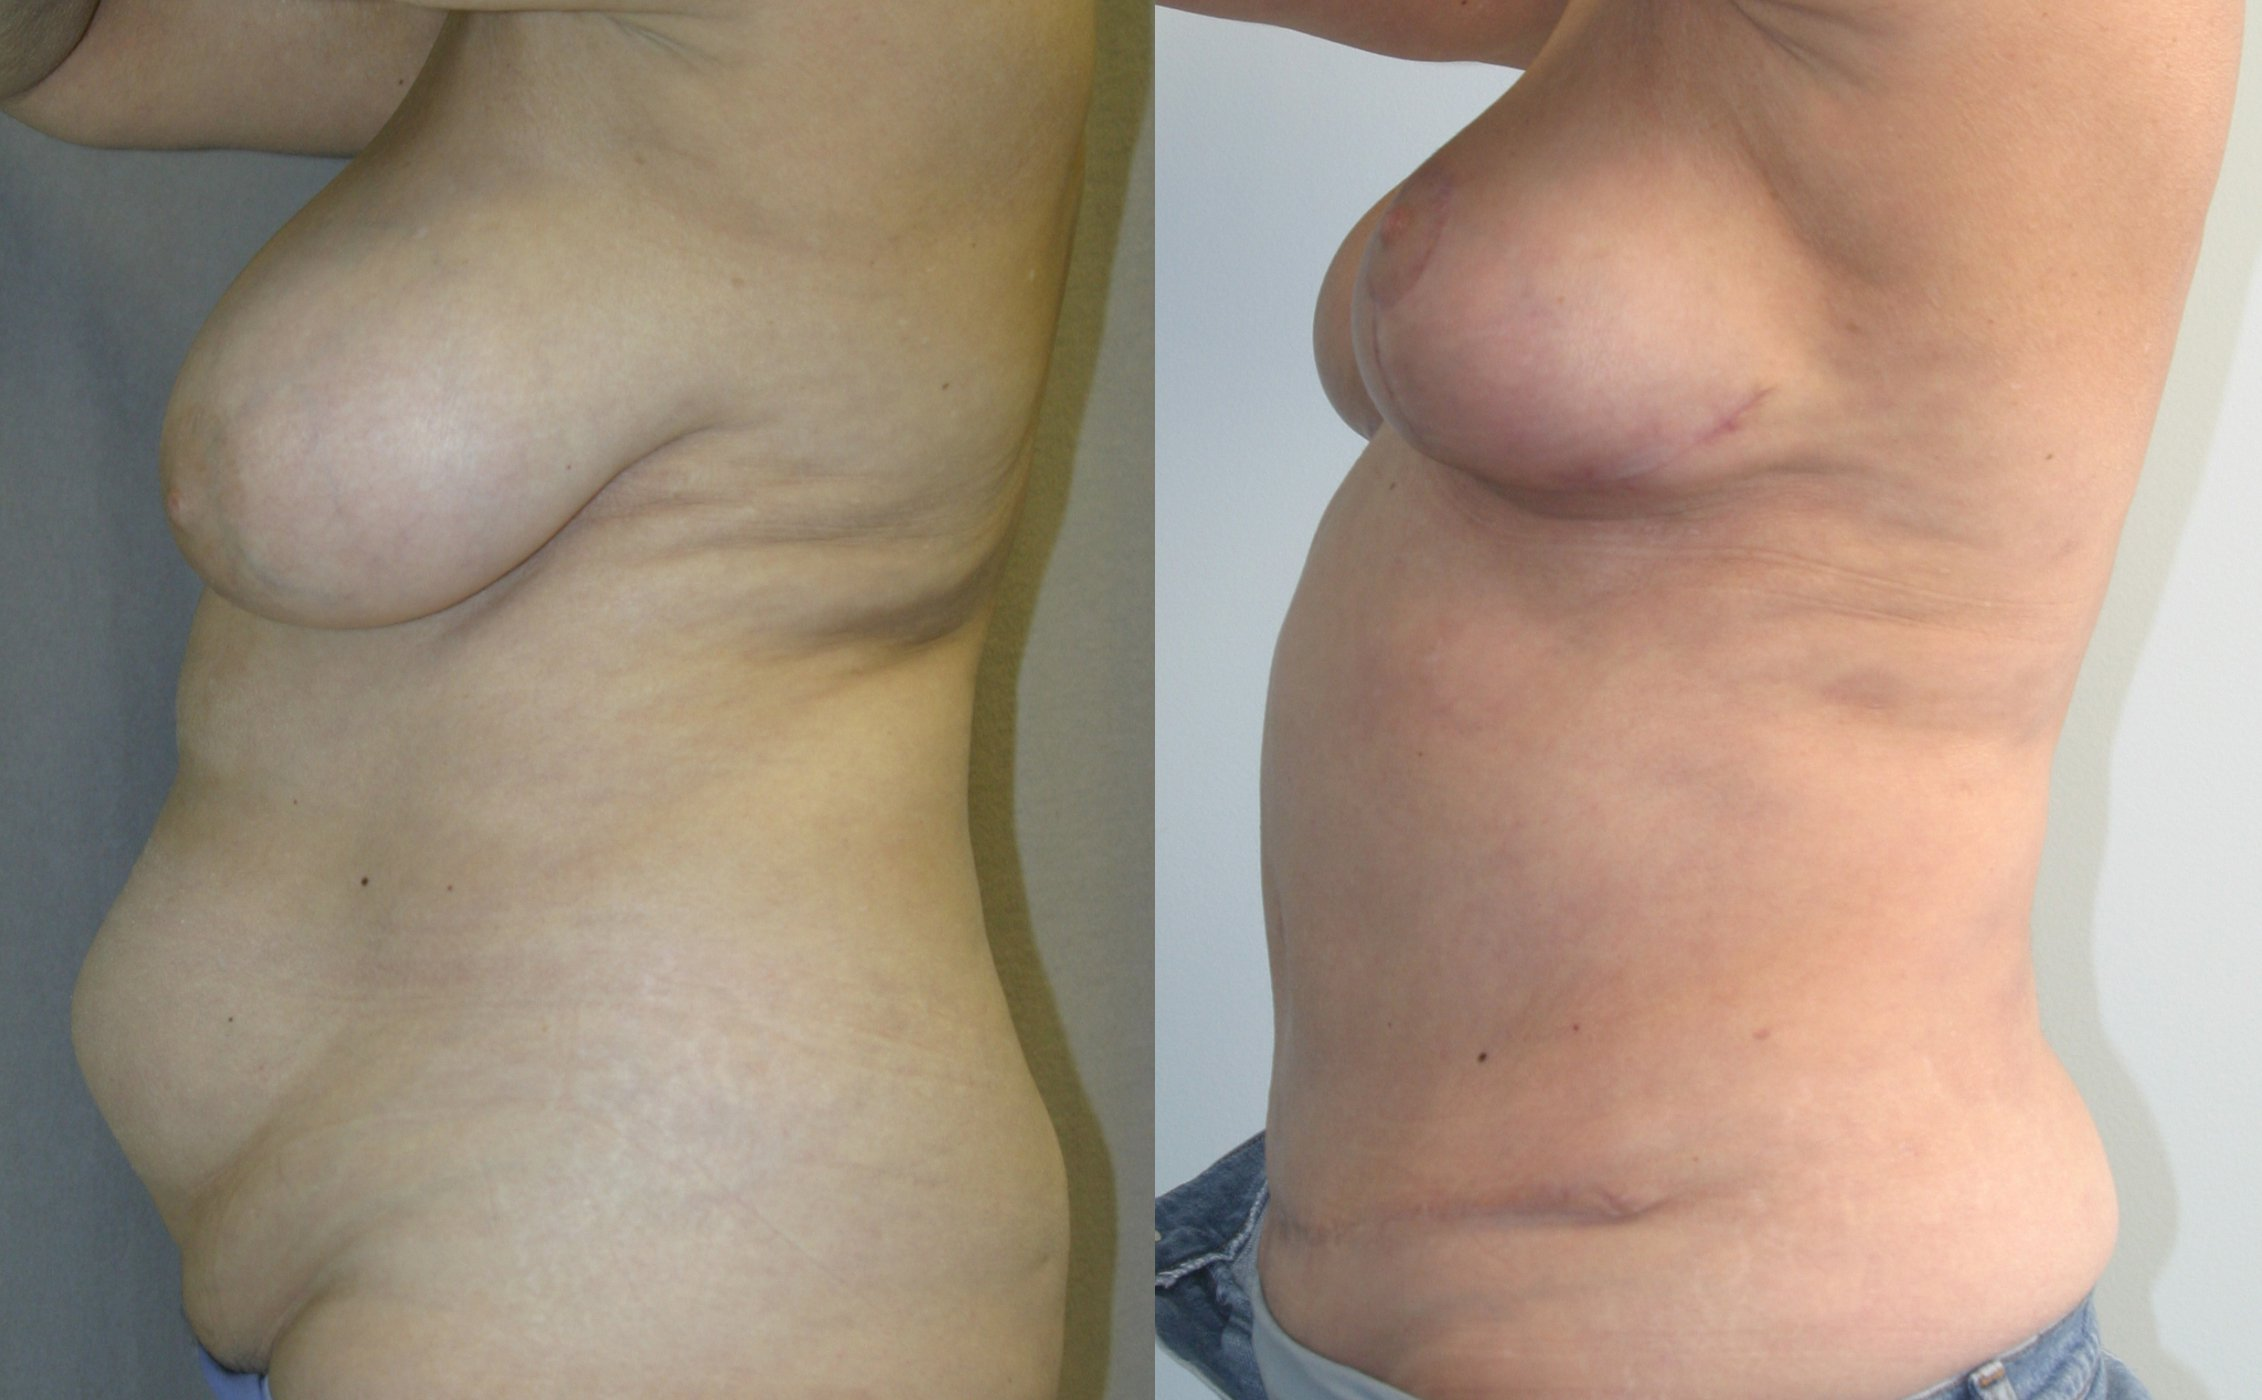 62-year-old tummy tuck one year liposuction back,, breast reduction 3 months left side